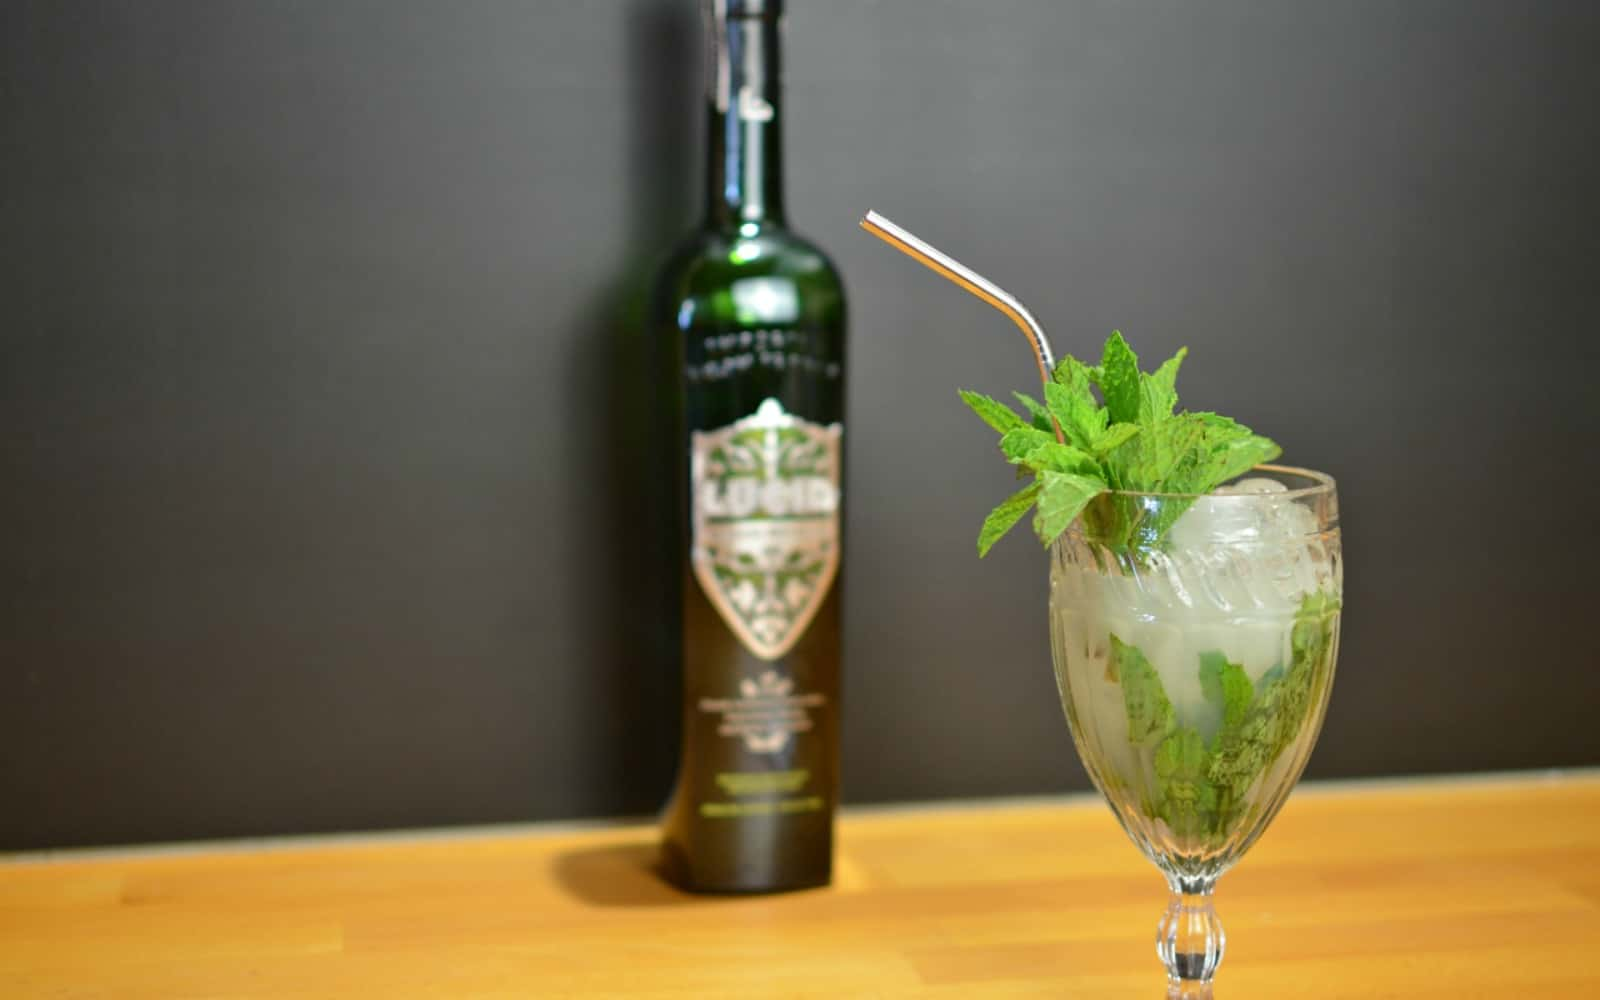 how to get absinthe in the us